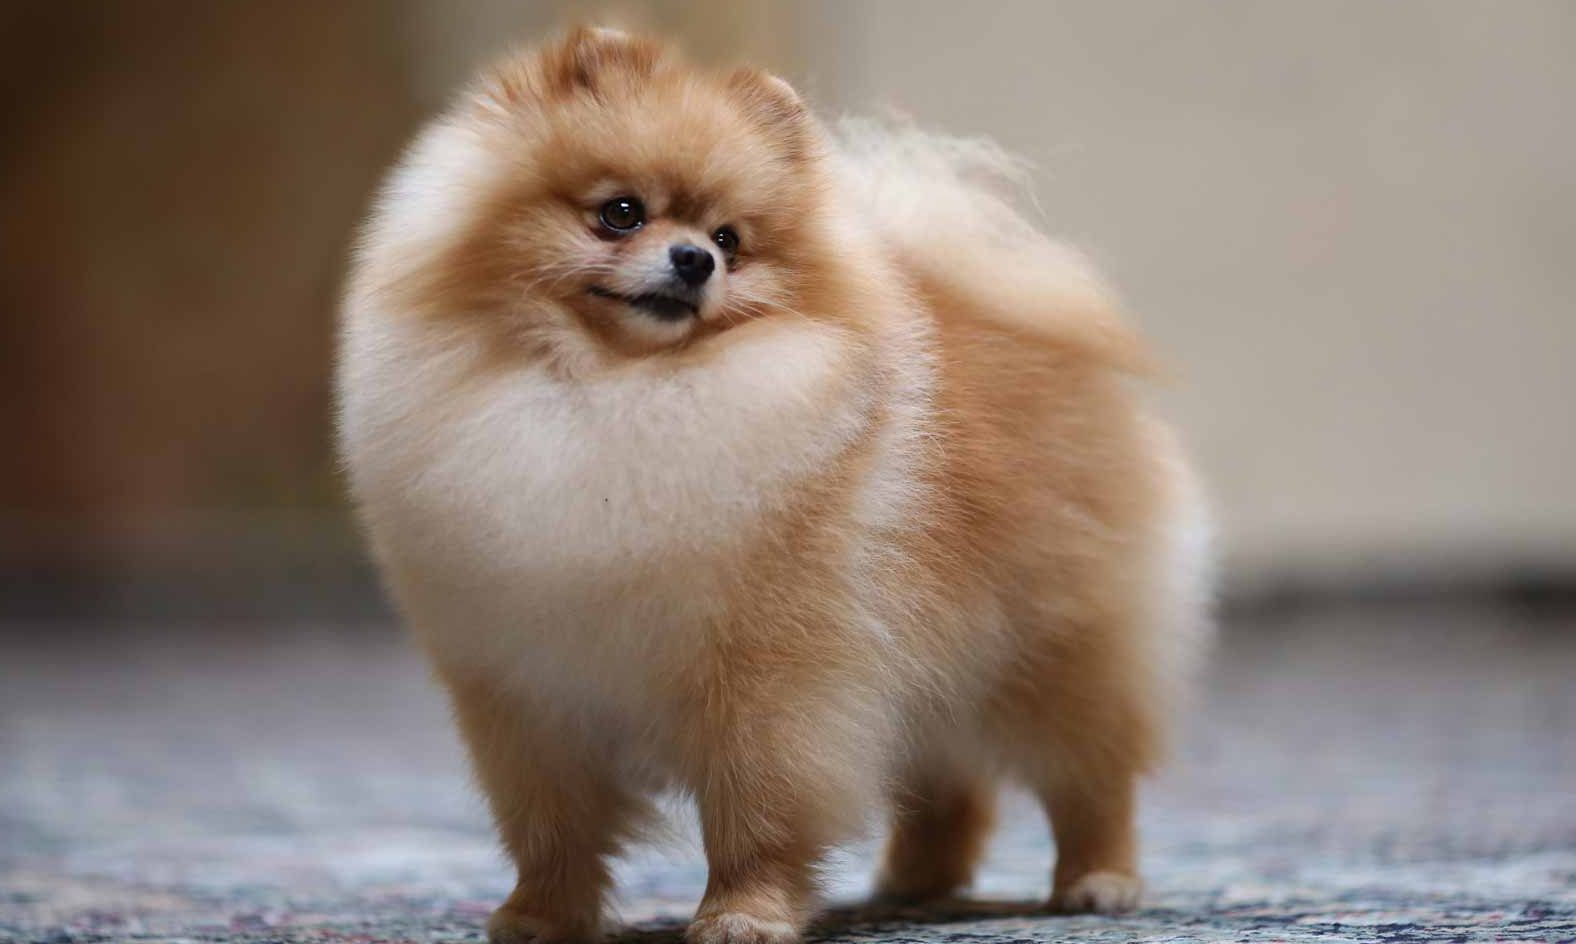 Pomeranian Puppies For Sale Pom Puppies Greenfield Puppies Cute Small Dogs Pomeranian Puppy For Sale Pomeranian Puppy